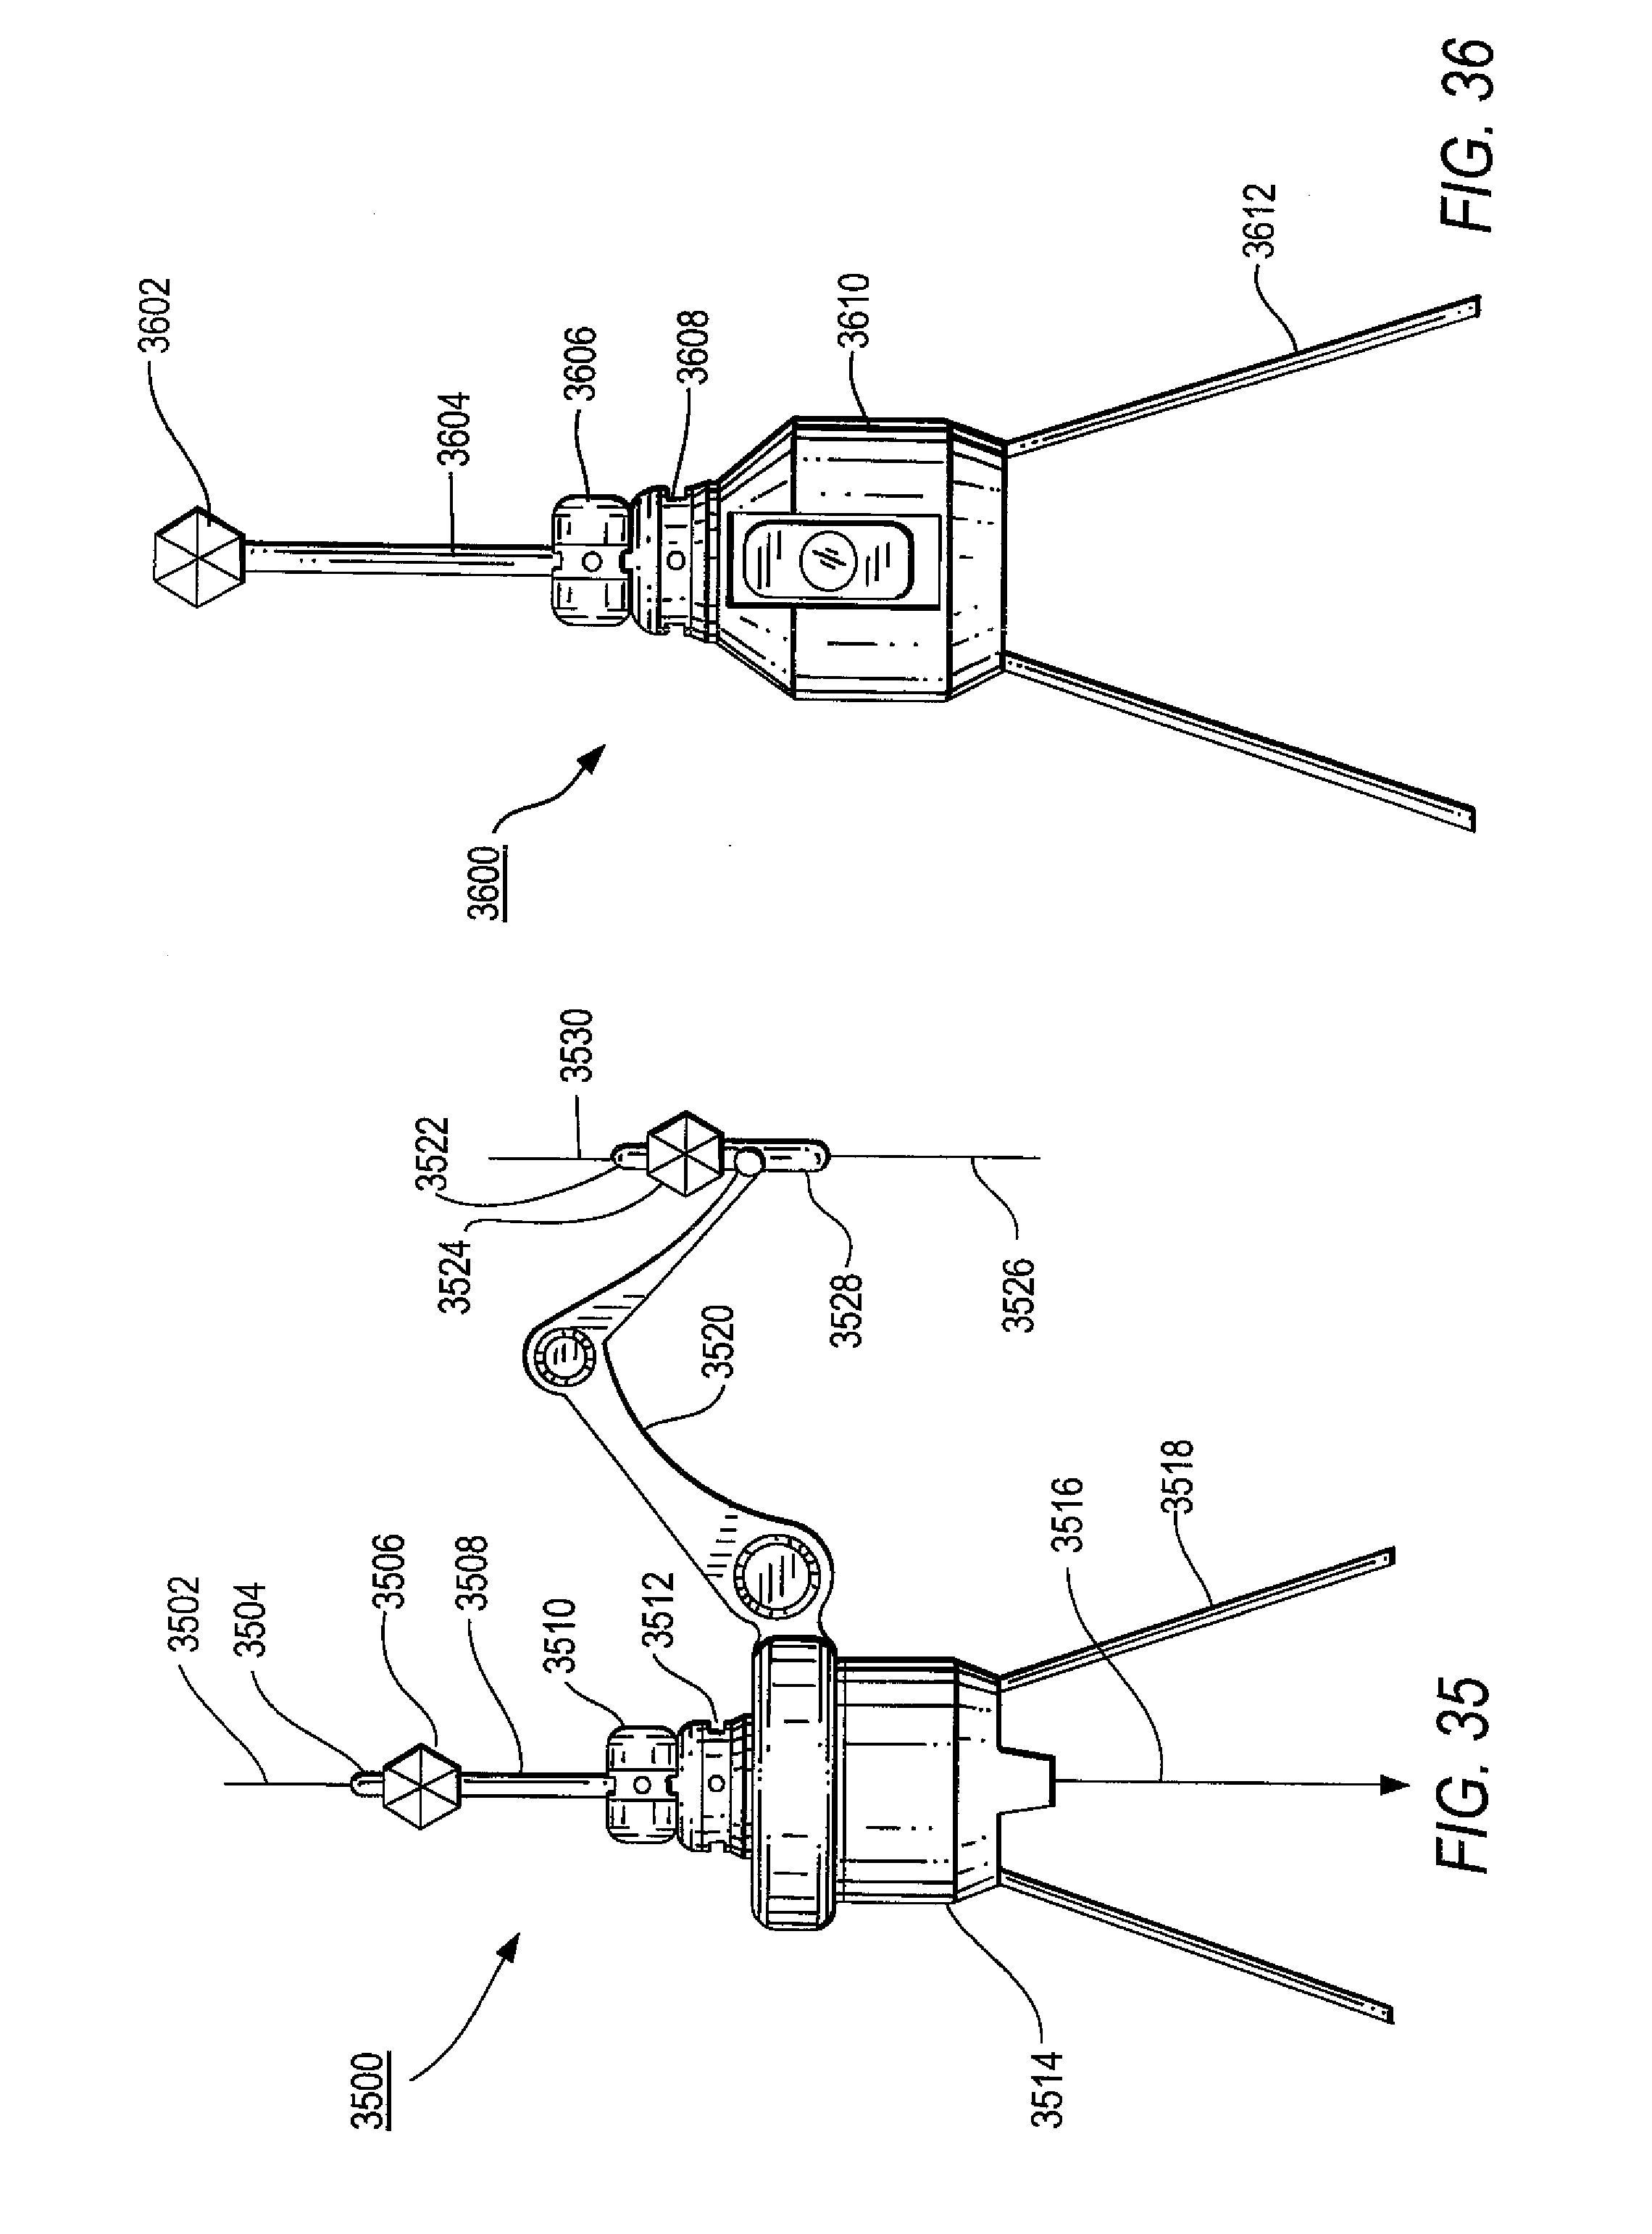 Mimic Diagram Of A Generator Fuel Oil Supply System